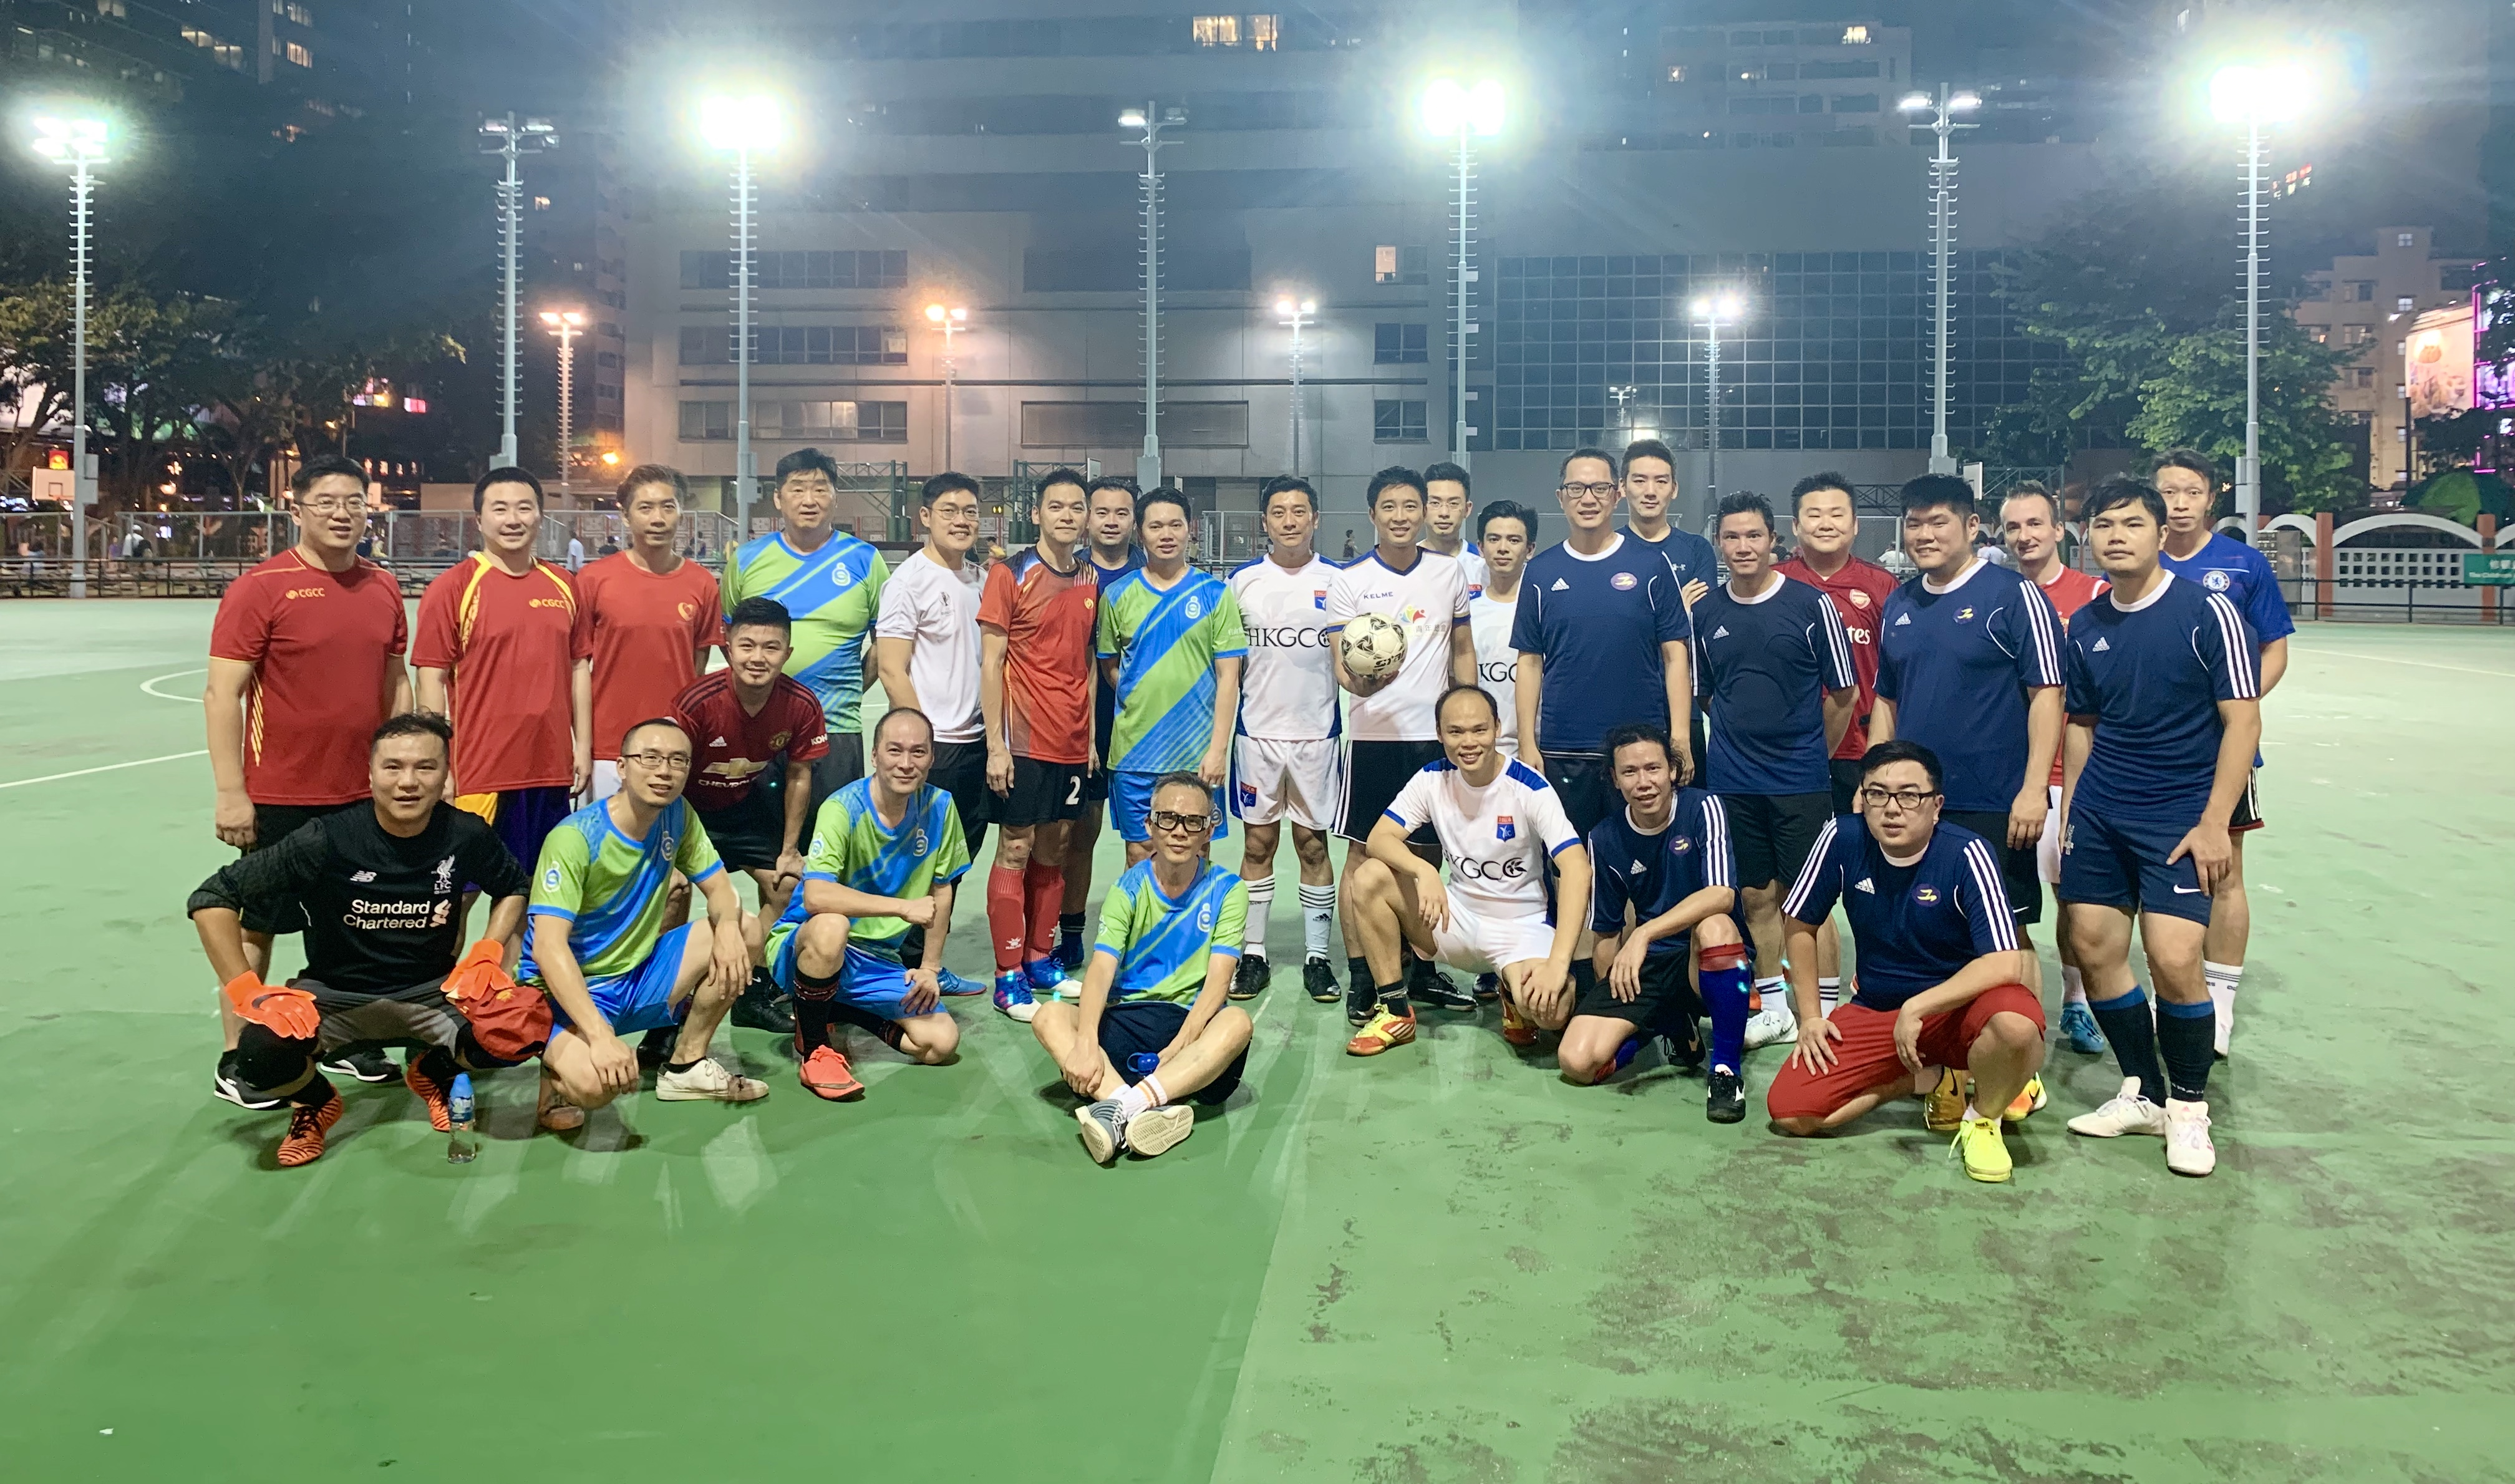 YEC Chairman Eric Fok led the club's football team to participate in a friendly match.